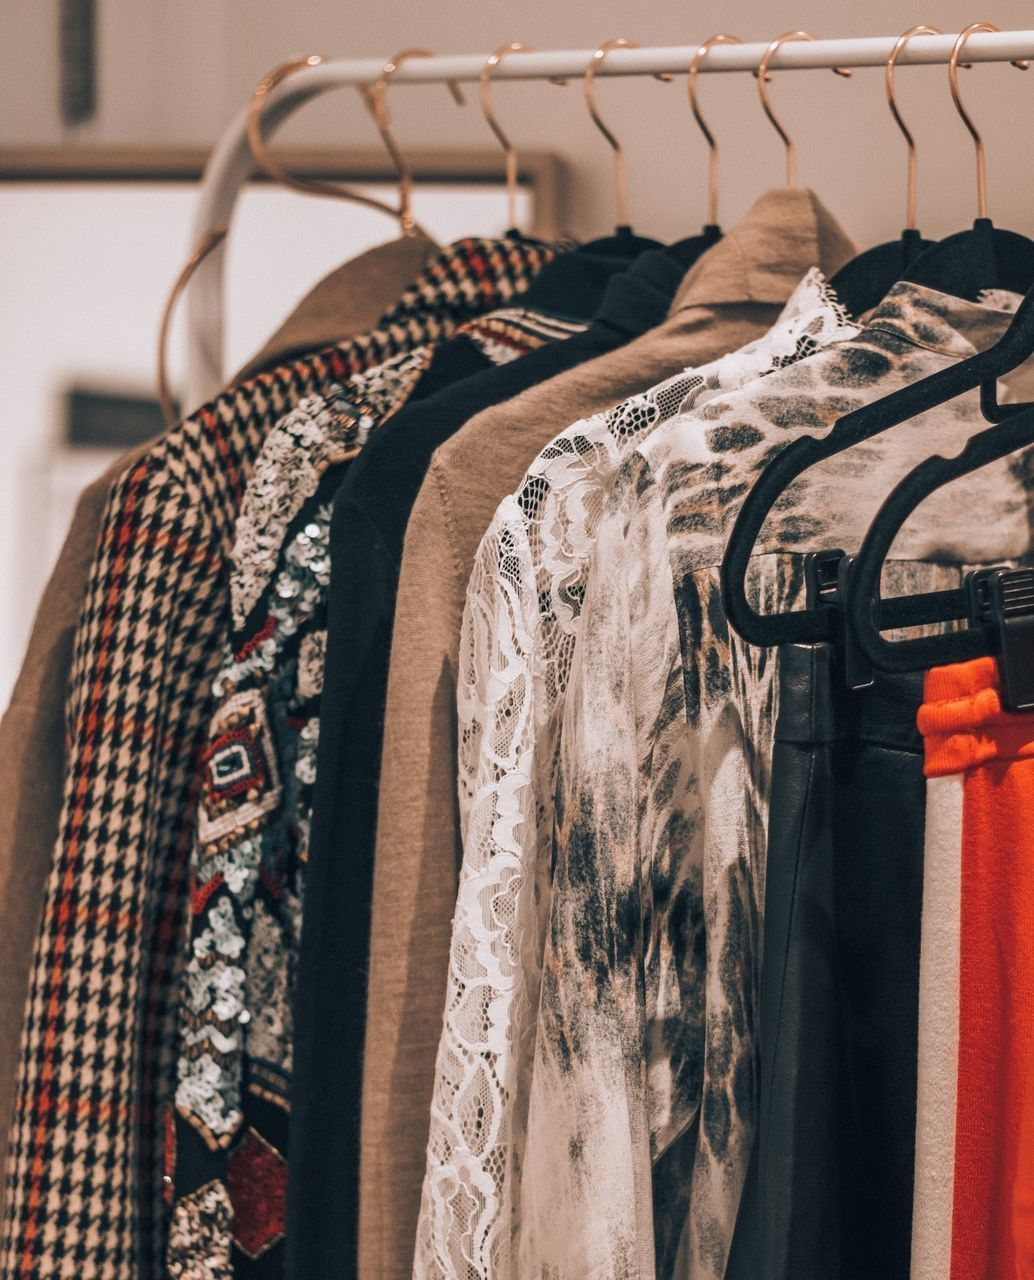 clothing, coathanger, hanging, rack, fashion, no people, indoors, textile, focus on foreground, furniture, clothes rack, variation, choice, close-up, retail, closet, still life, dress, for sale, collection, menswear, jeans, womenswear